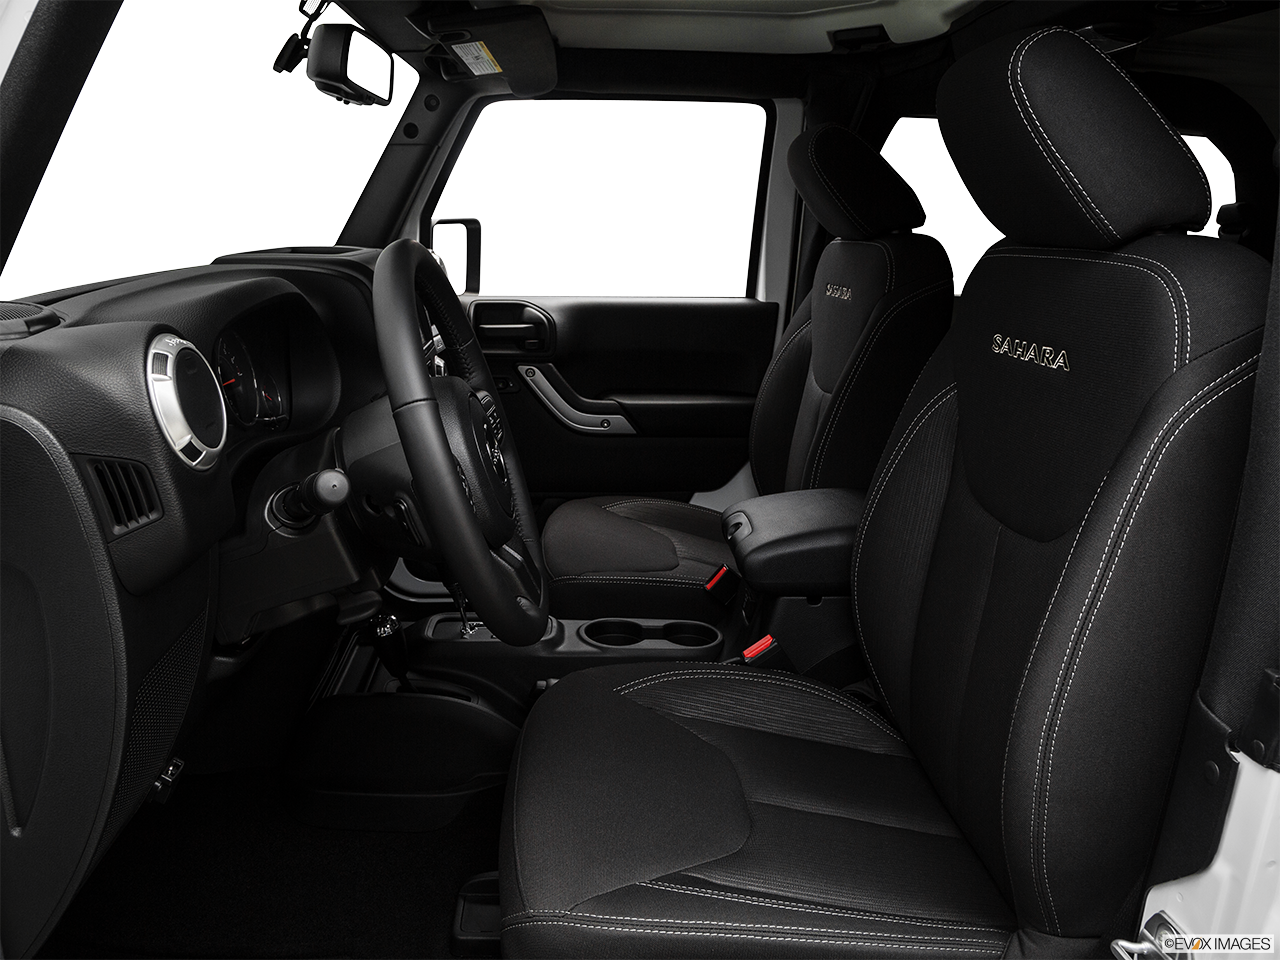 Research The 2017 Jeep Wrangler in Turnersville